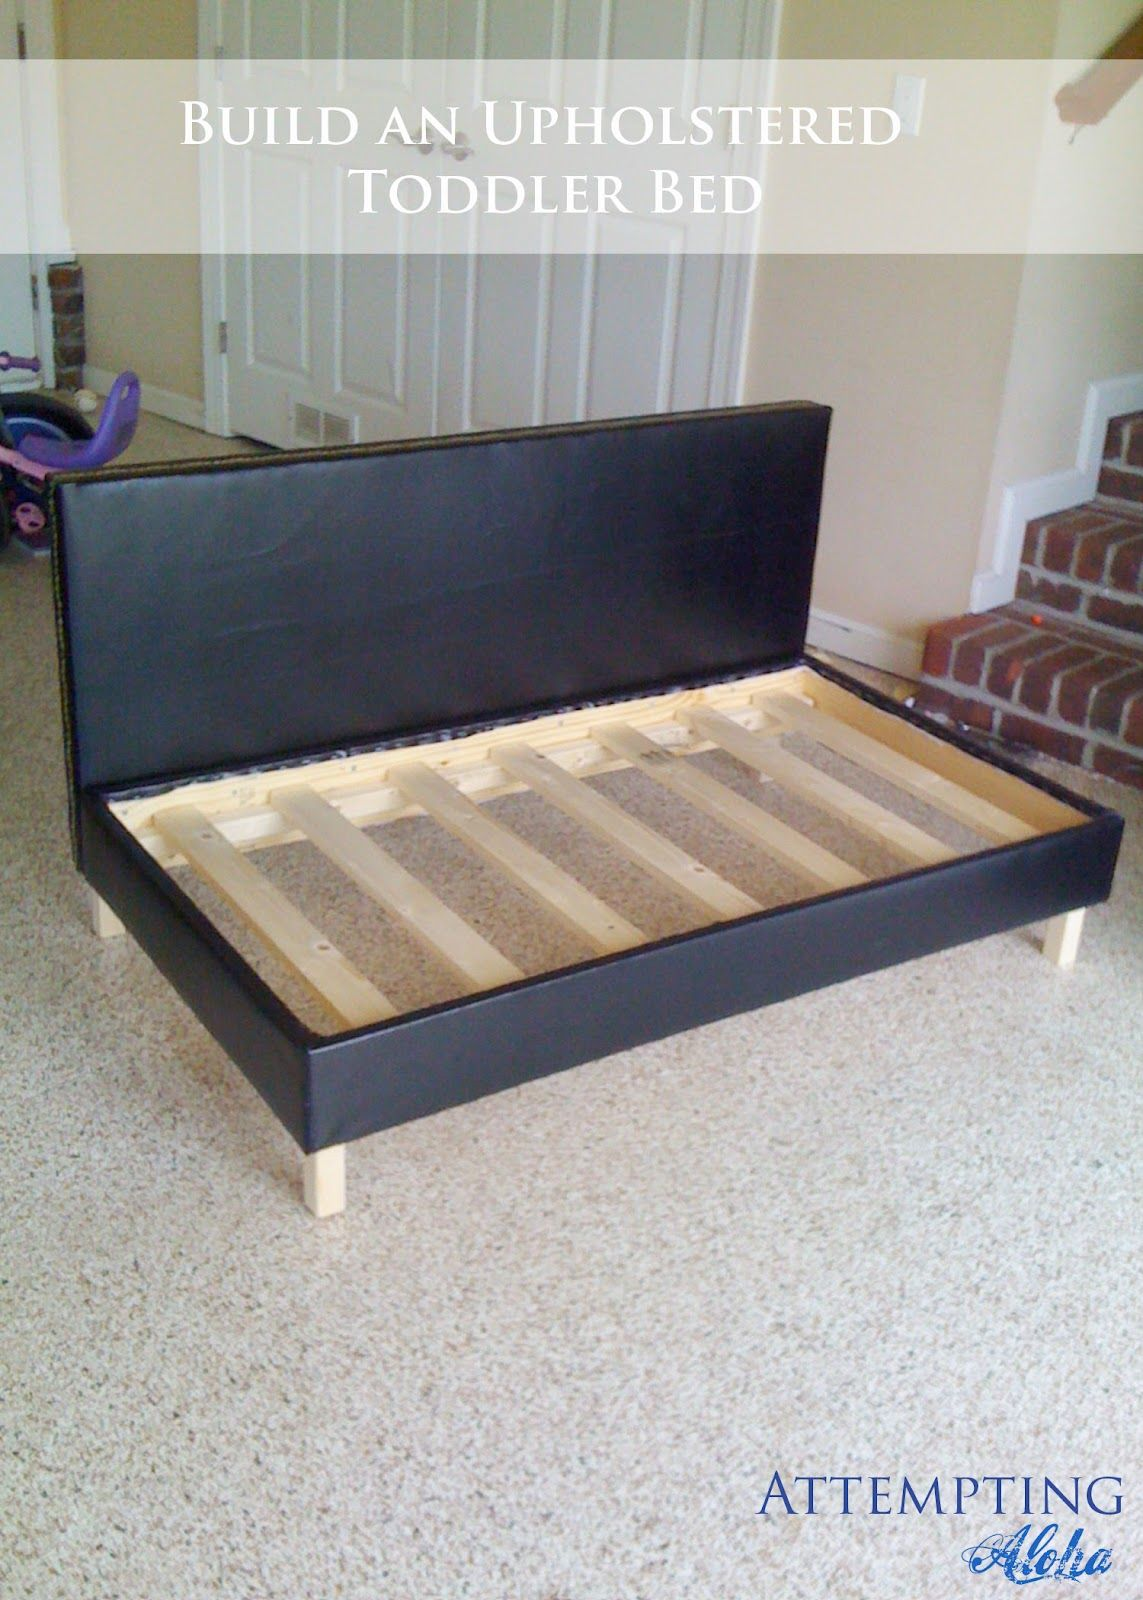 Diy Upholstered Toddler Bed Couch Plans With Images Diy